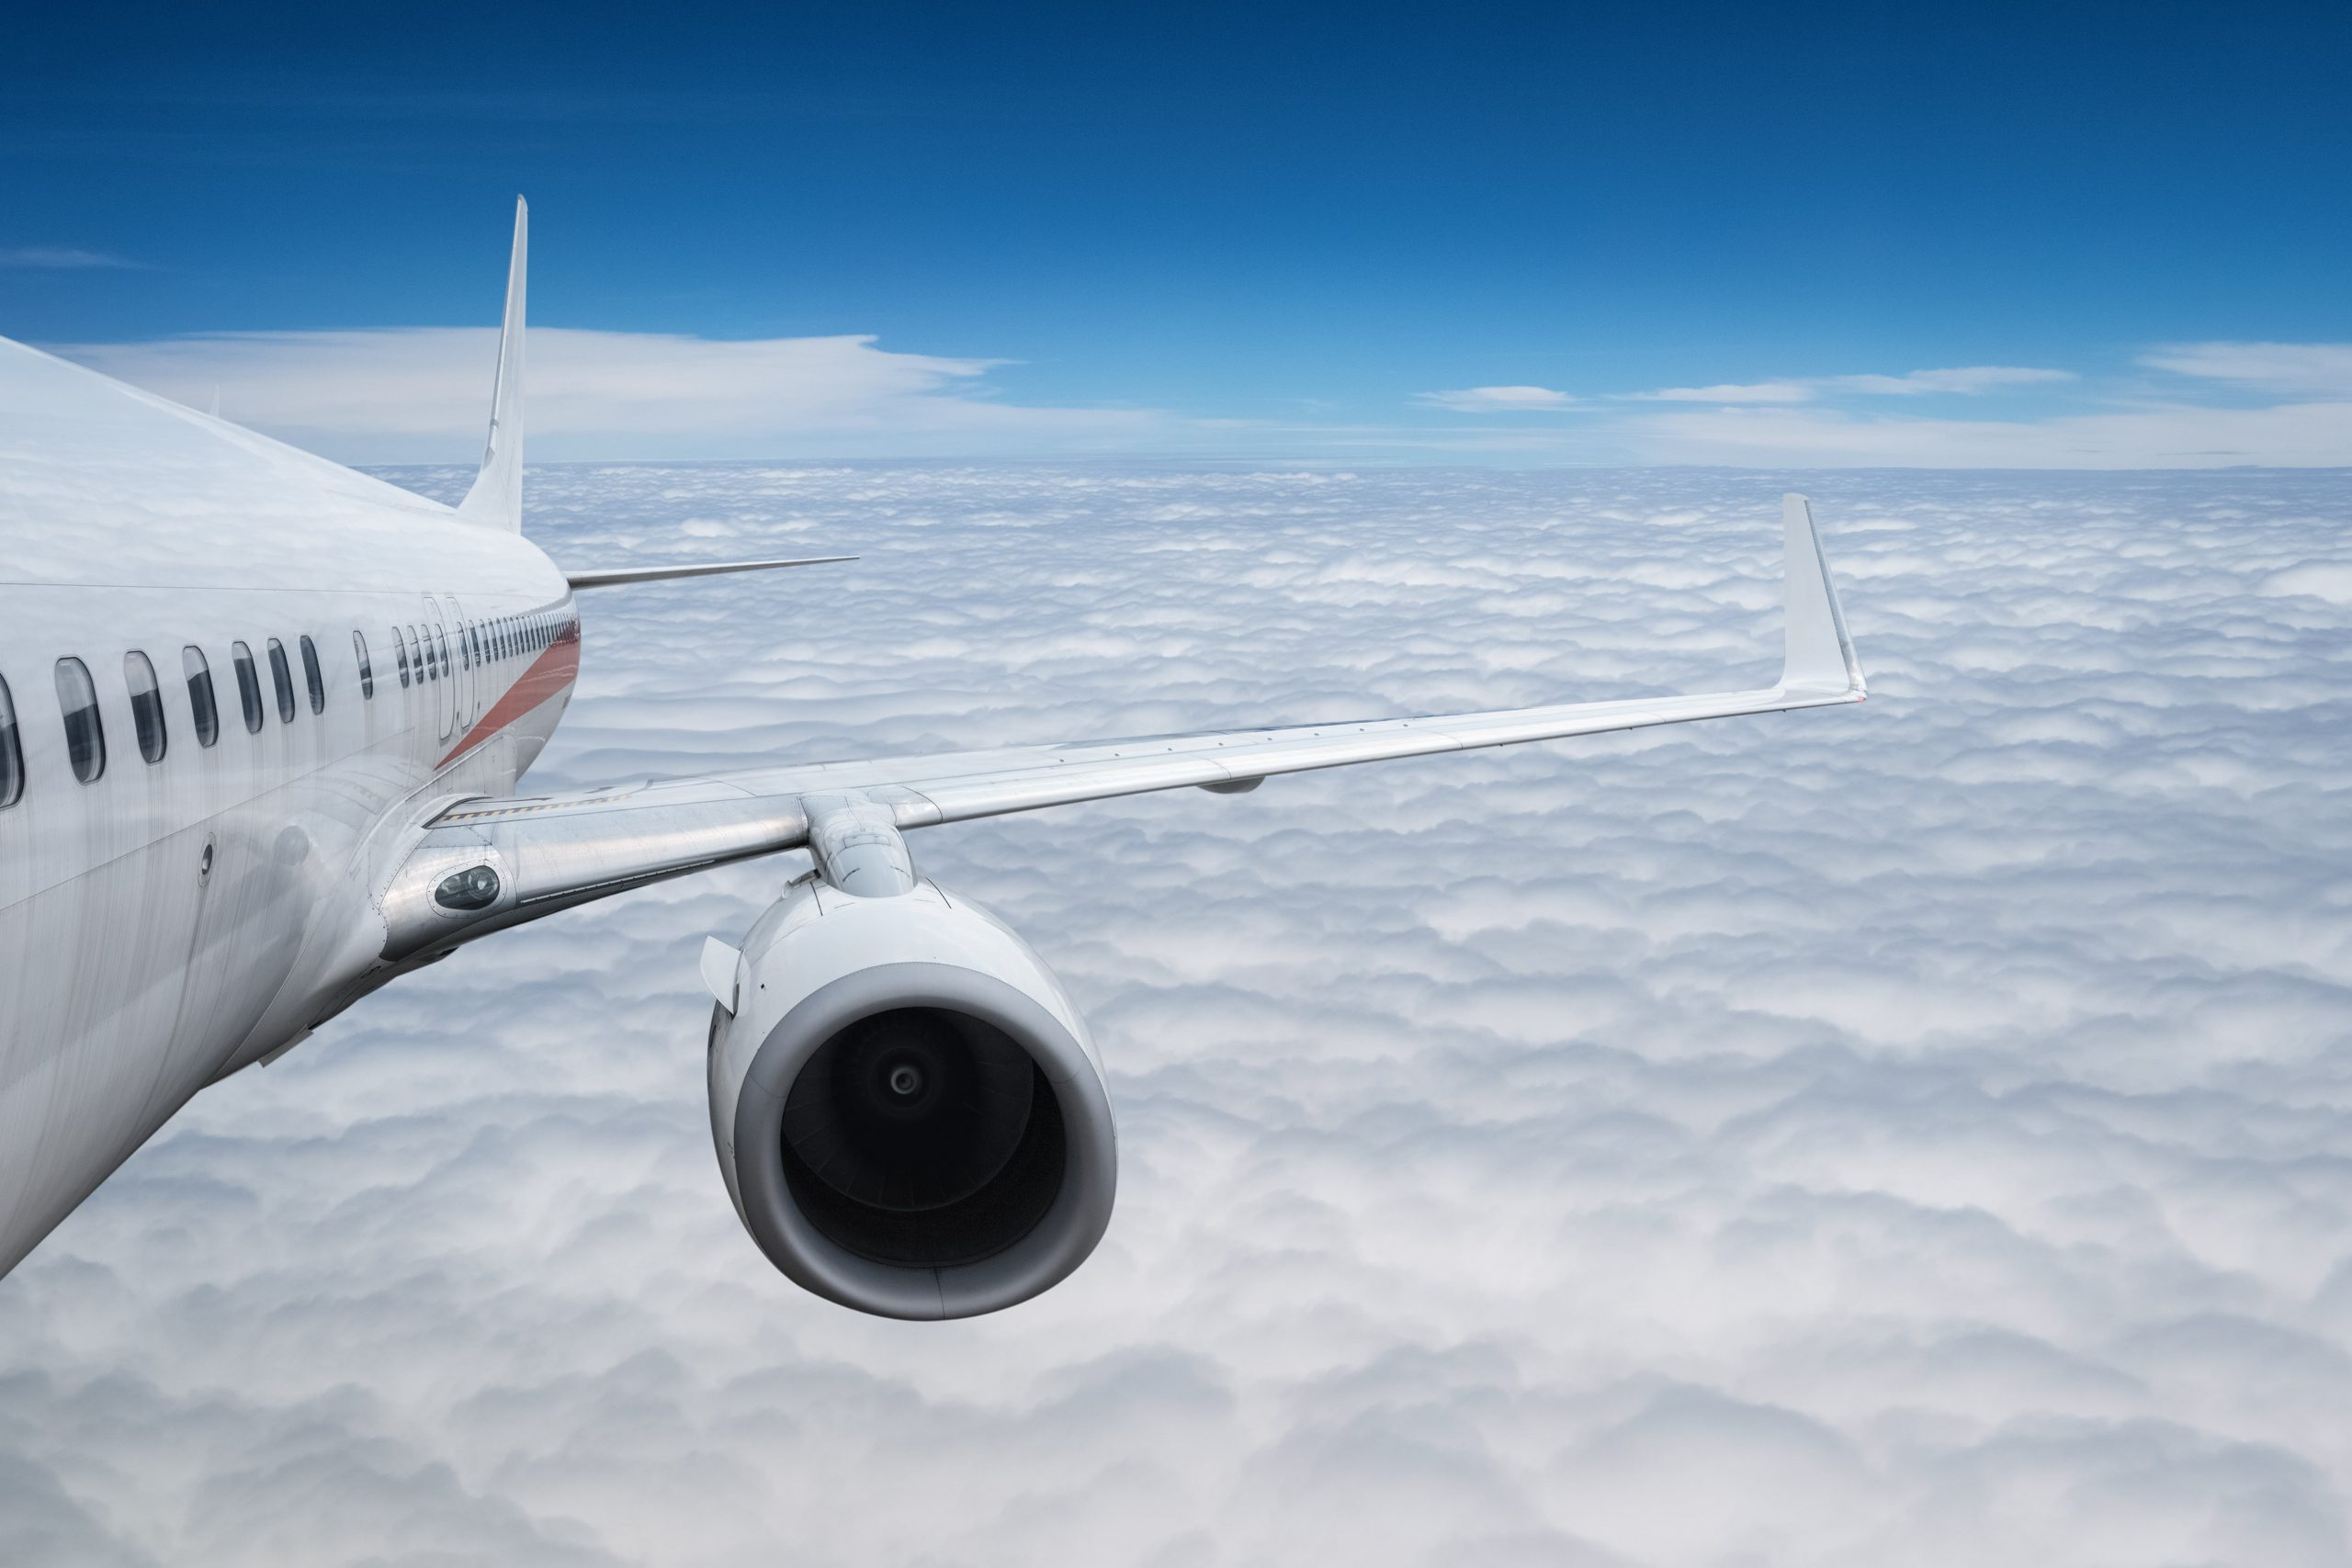 airplane-above-the-clouds-8YUZKY9